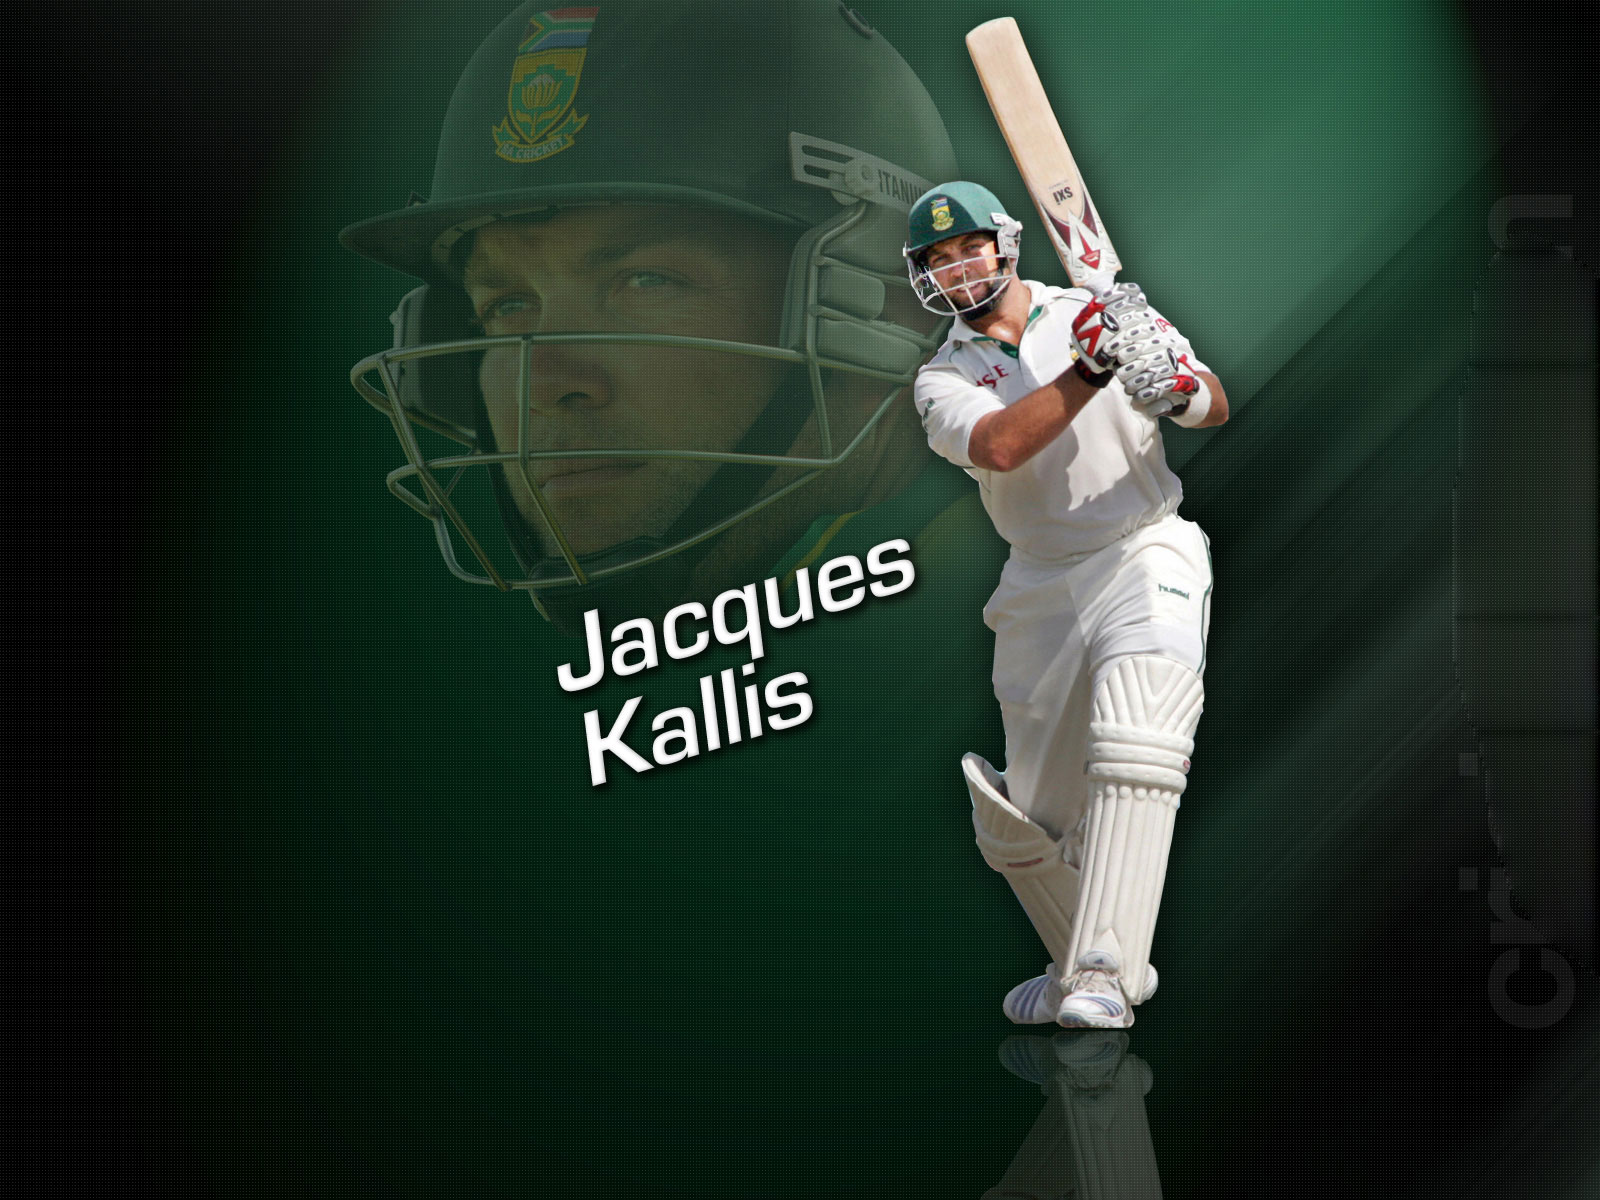 http://2.bp.blogspot.com/-wbatFzPIEI8/TZbR4y-DKnI/AAAAAAAACoE/NC__d5TL-ak/s1600/Jacques+Kallis+wallpapers+by+cool+sports+players+%25282%2529.jpg